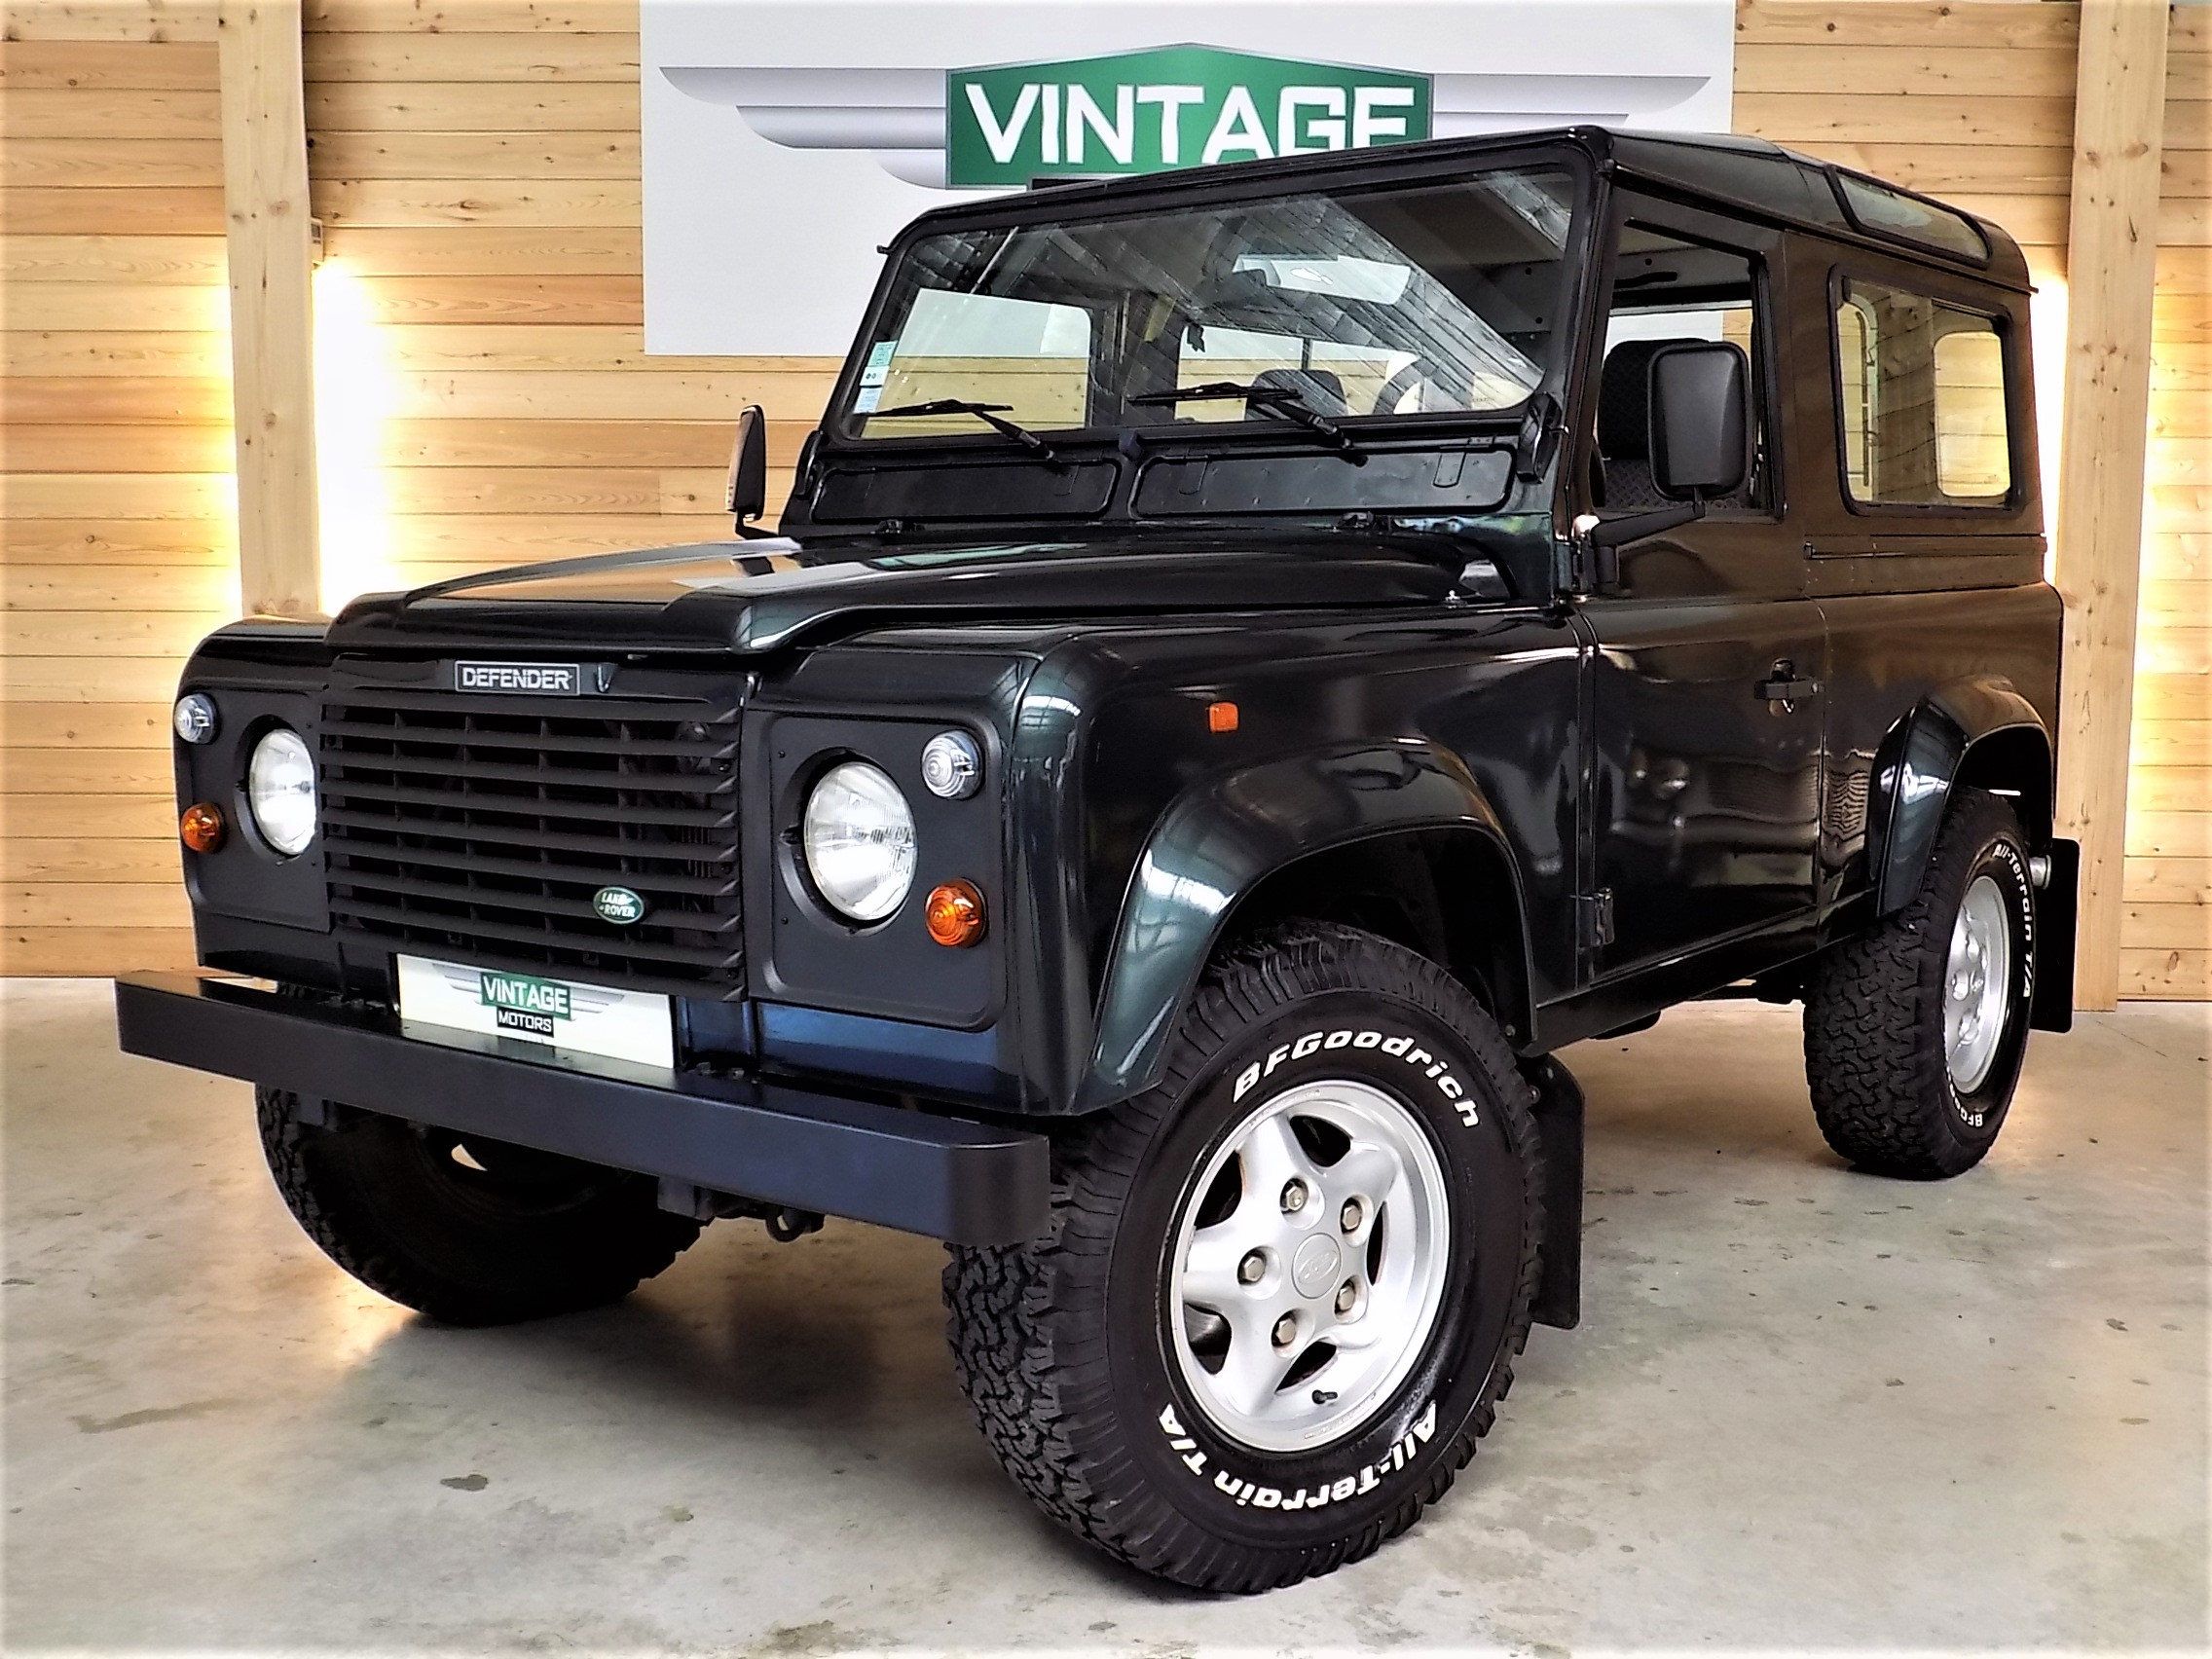 Land Rover Defender 90 300 Tdi - 1997